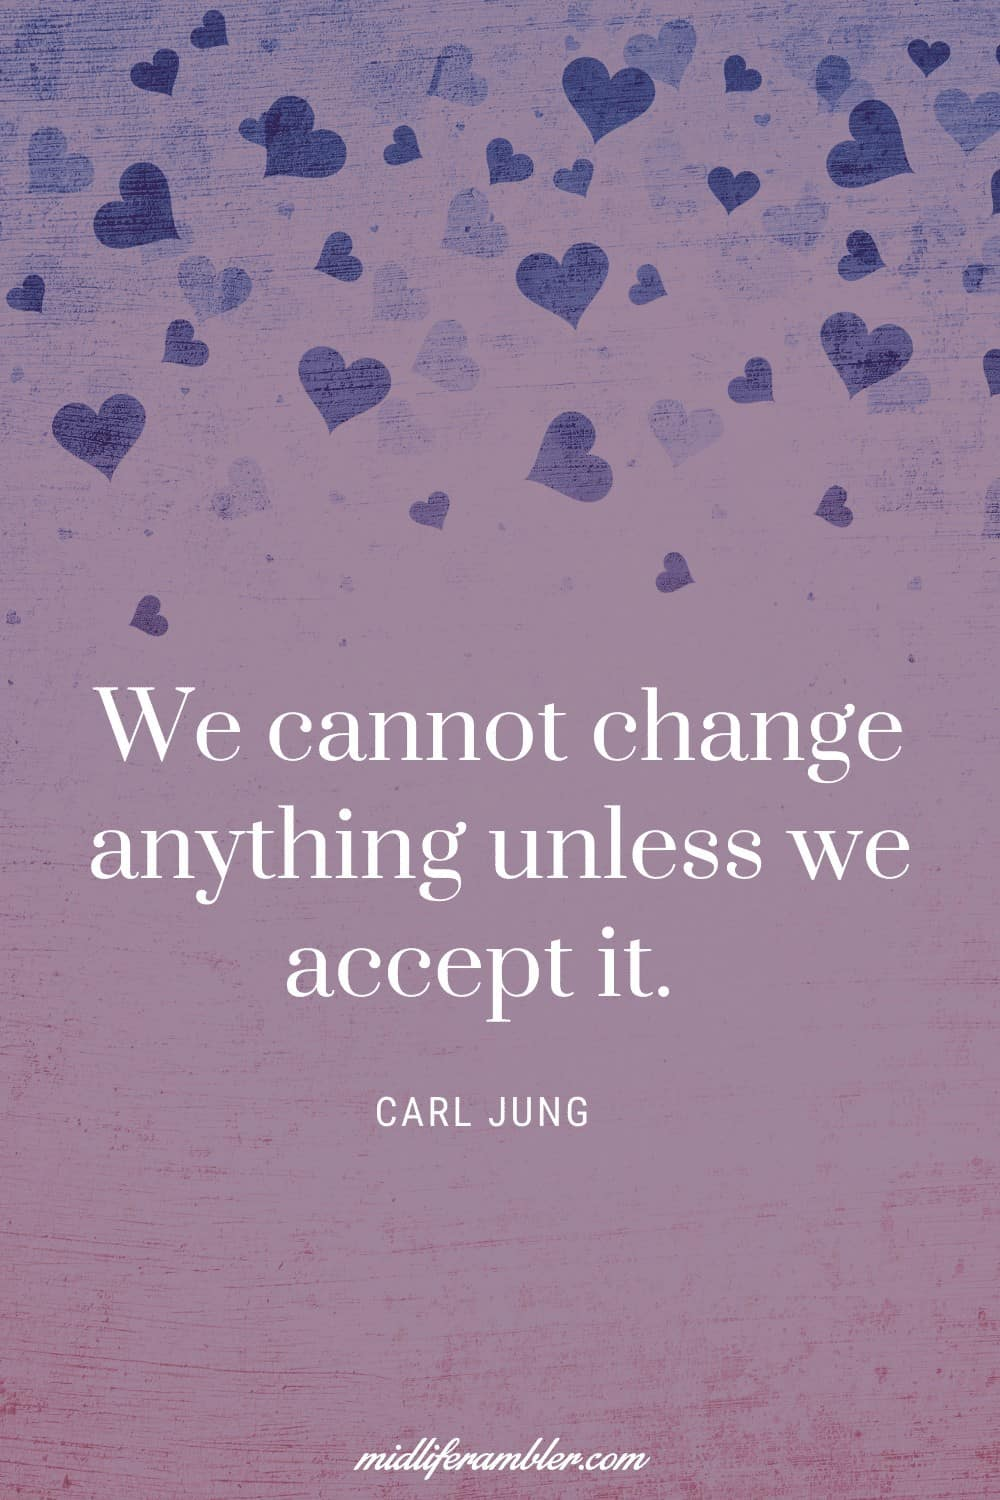 50 Self-Compassion Quotes and Affirmations to Help You Learn to Love and Accept Yourself - We cannot change anything unless we accept it. – Carl Jung